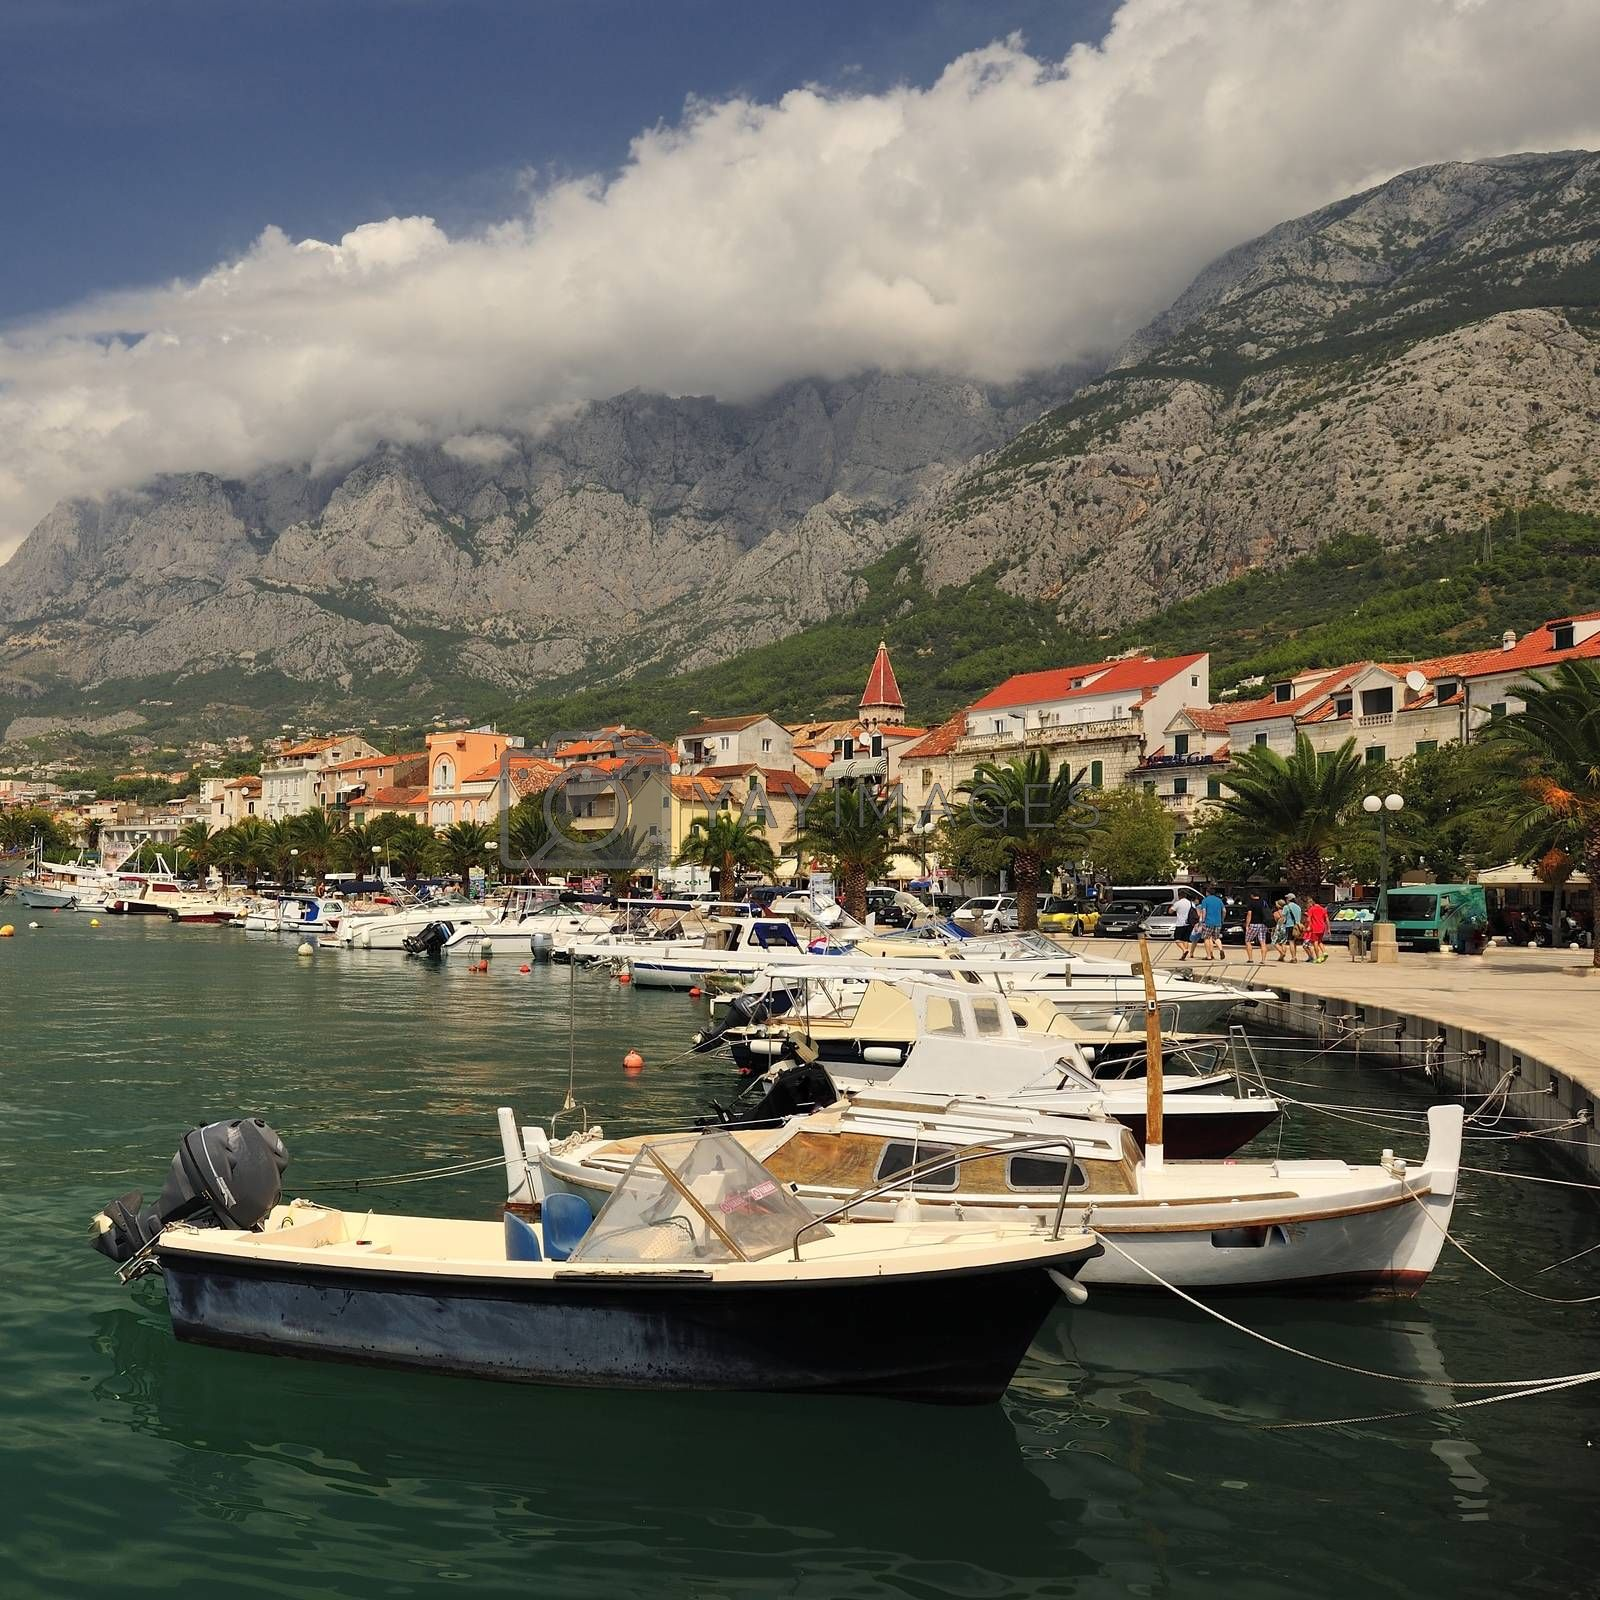 Harbour with boat, Markarska Riviera in Croatia.